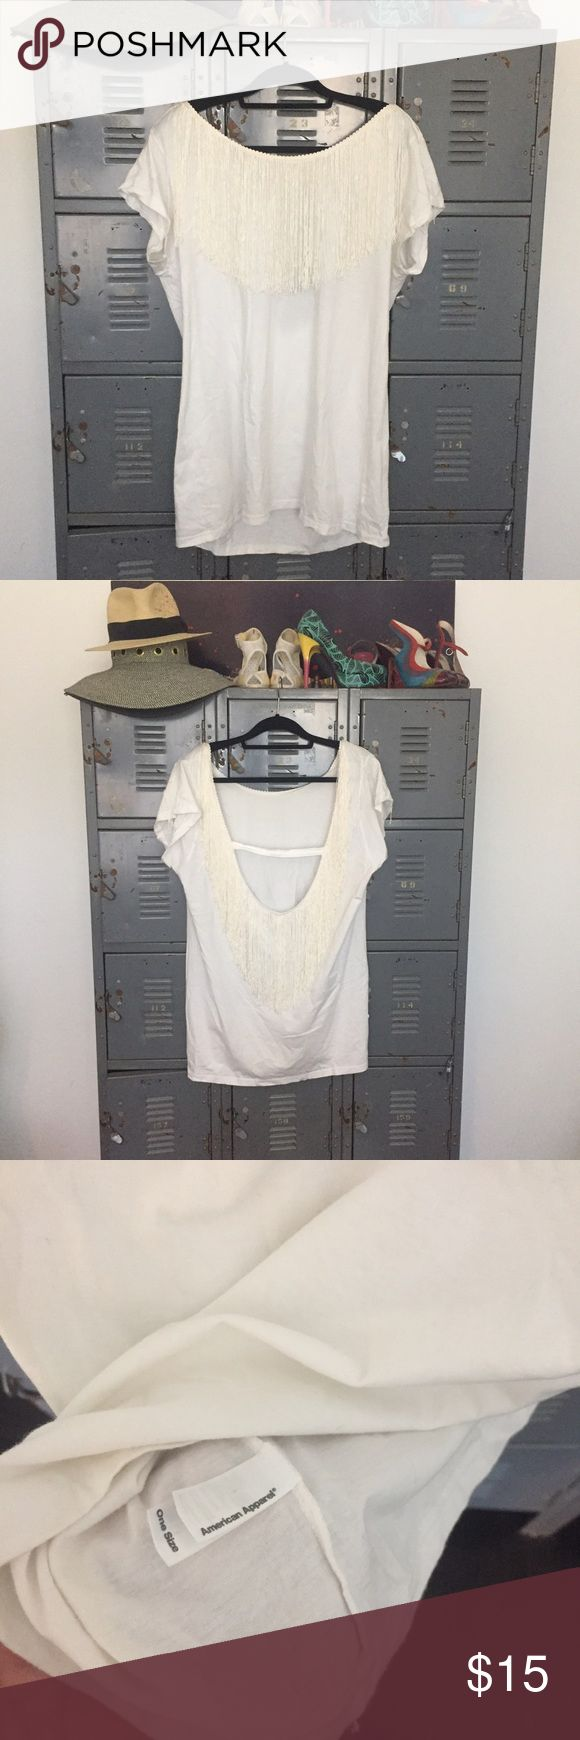 American Apparel Fringe Dress Festival chic. White low-back mini dress with fringe trim detail. One size fits most. Would also look cute belted. 100% Cotton. Hand Wash. American Apparel Dresses Mini